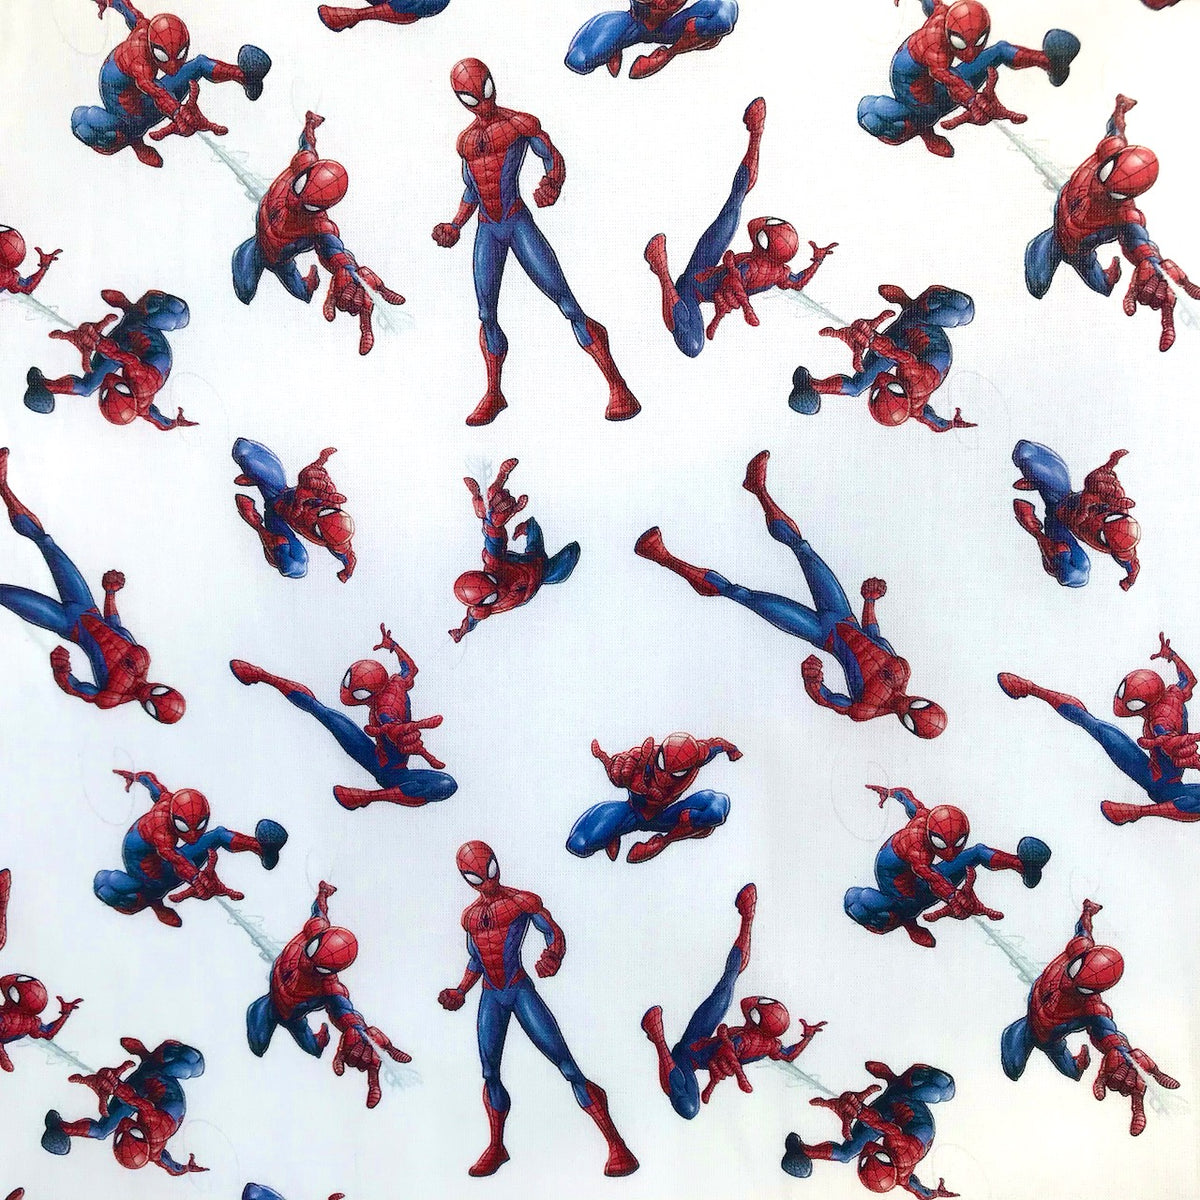 Marvel Spiderman 100% Cotton Fabric 58 Inches Wide (140cm) Sold Per 1/2 Metre